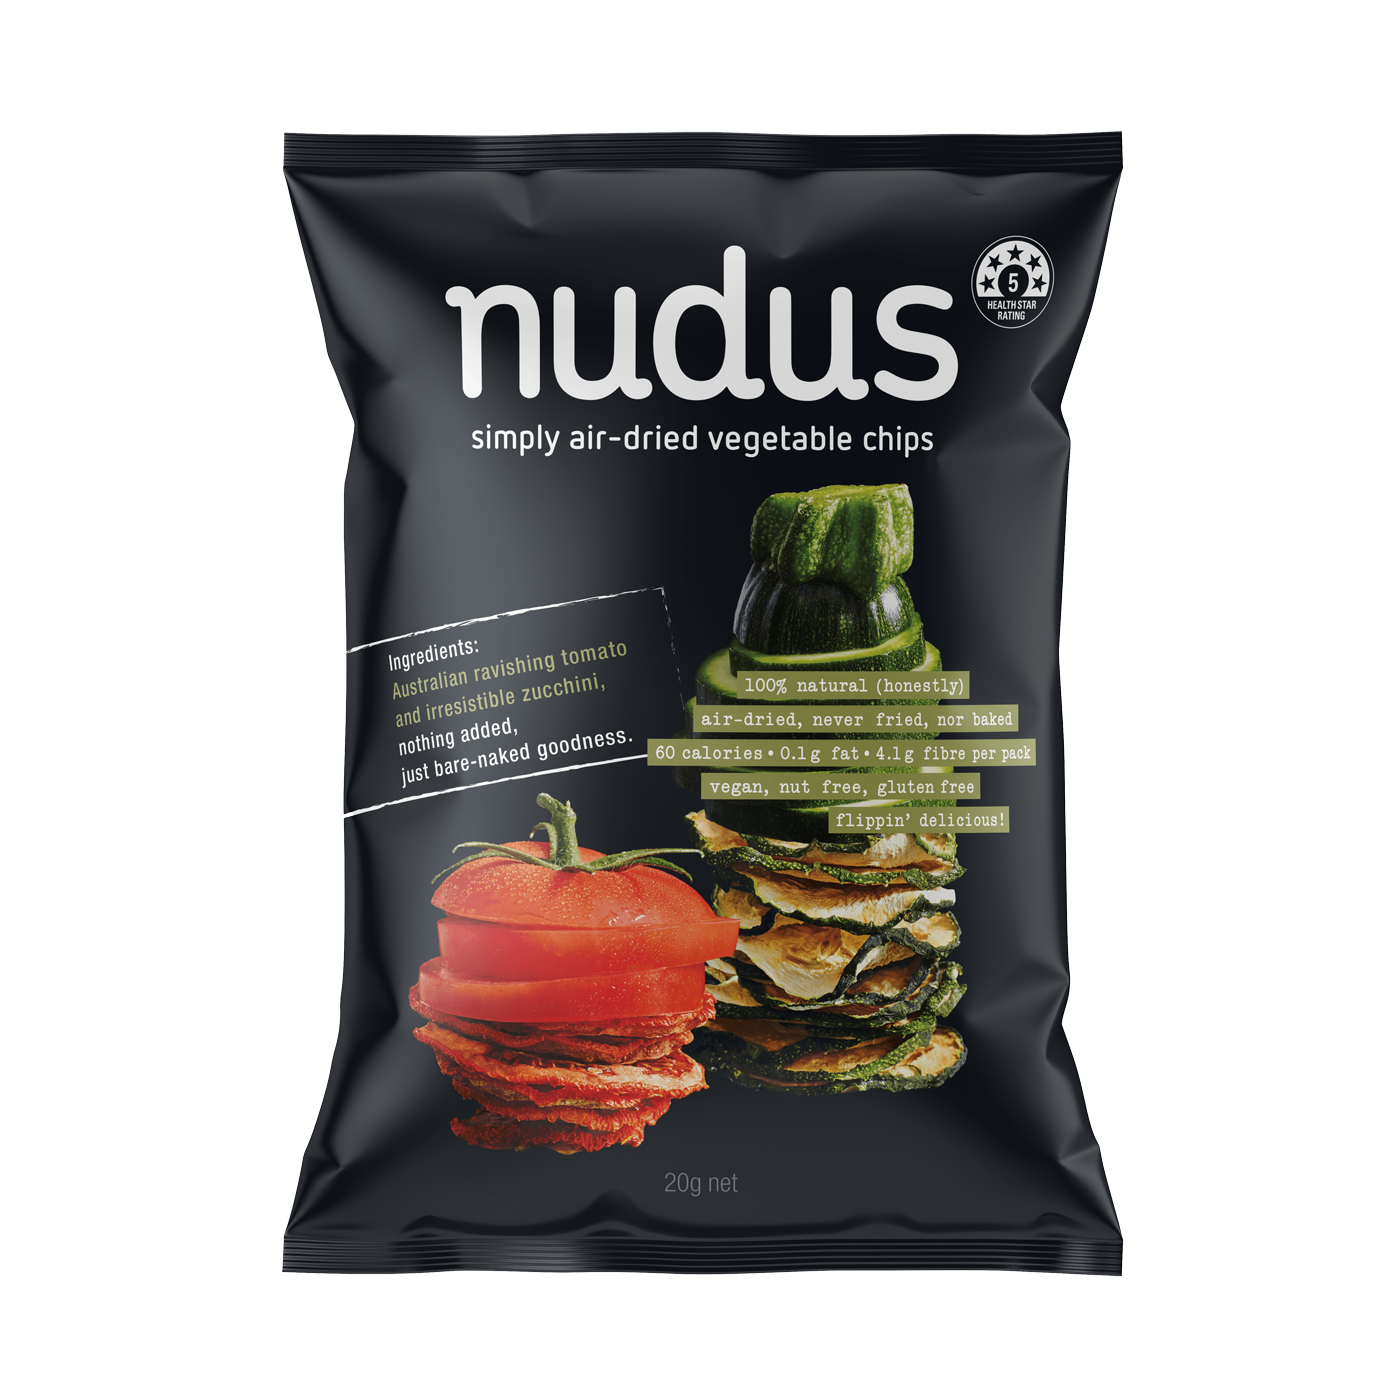 zucchini & tomato vegetable chips - 12 bags ($2.75 / 20g bag)